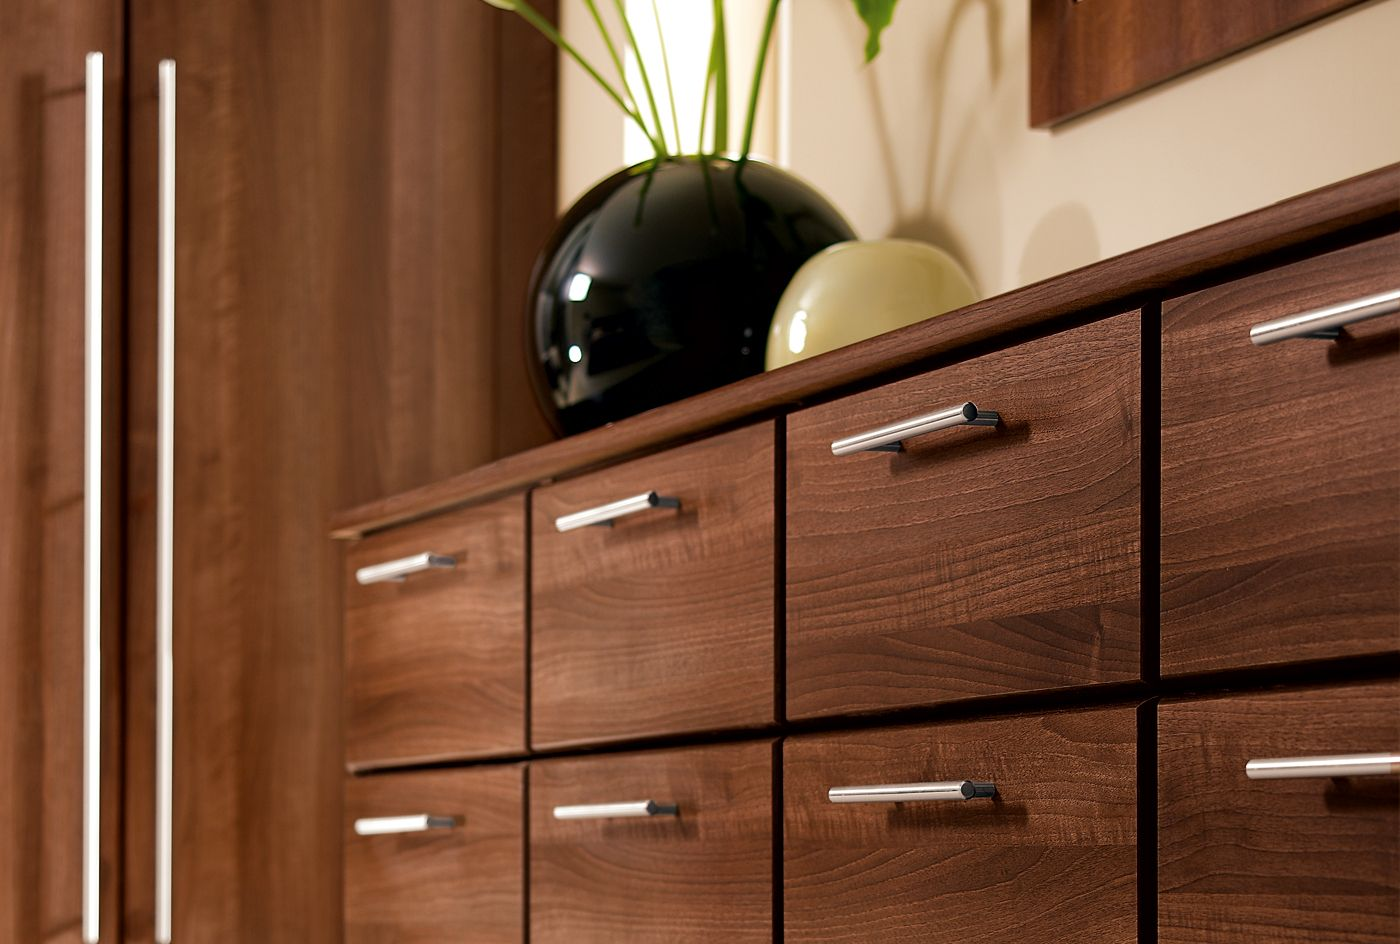 Malmo bedroom furniture u wardrobes from sharps arps